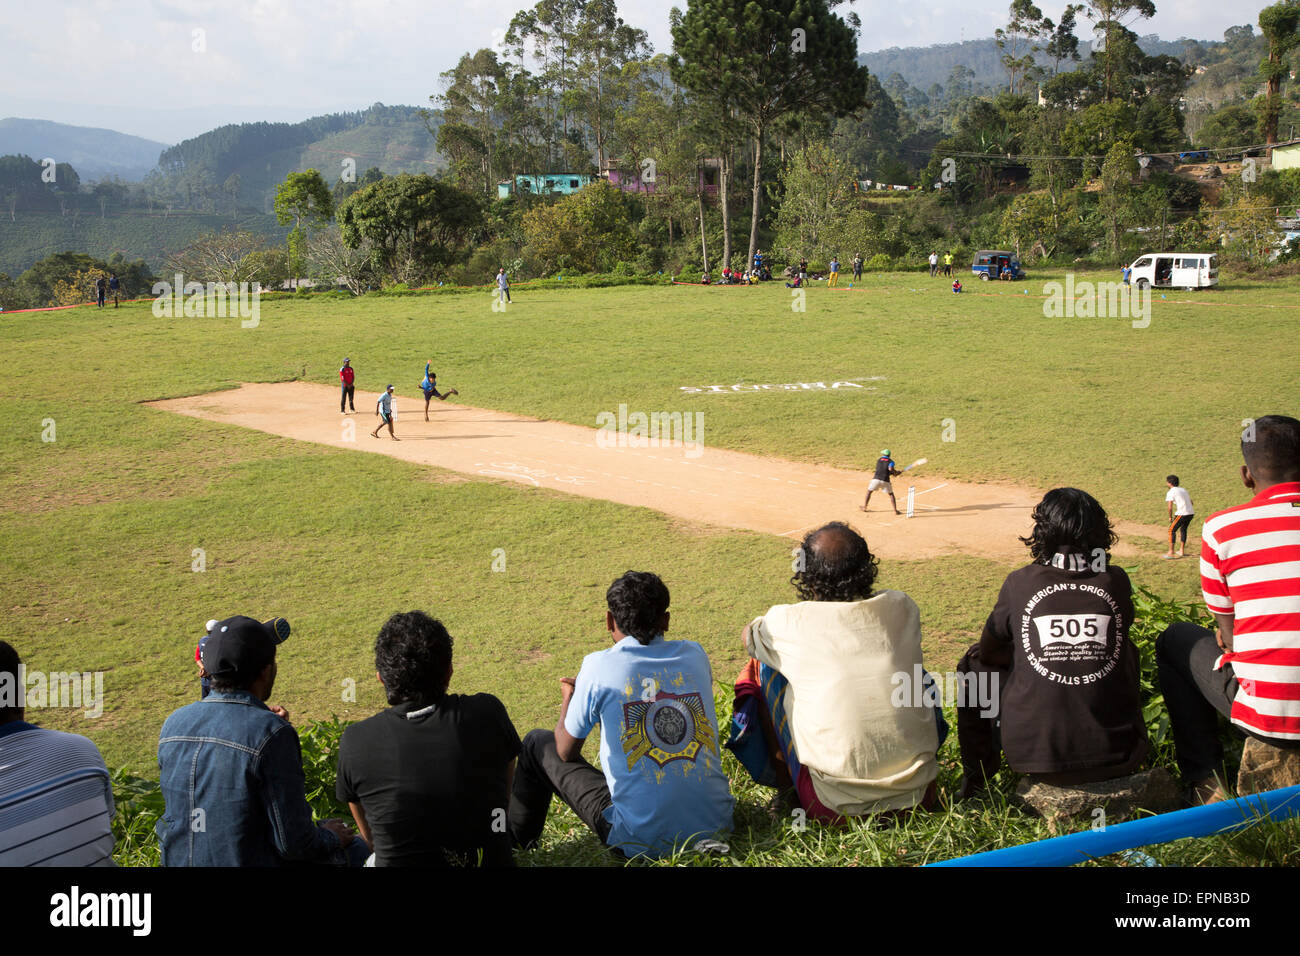 People watching cricket match, Haputale, Badulla District, Uva Province, Sri Lanka, Asia - Stock Image